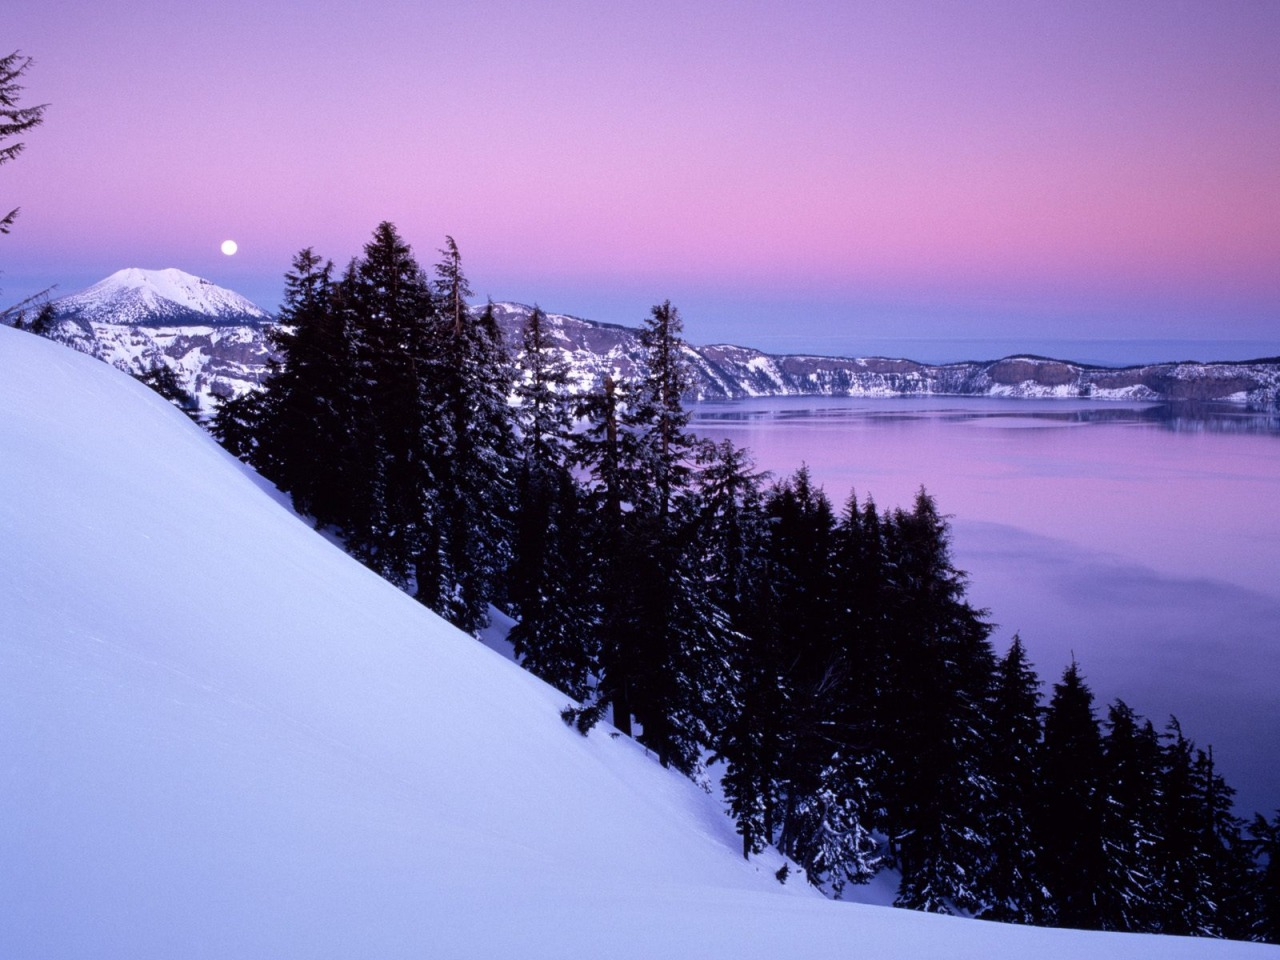 crater lake national park wallpaper winter nature wallpapers in jpg